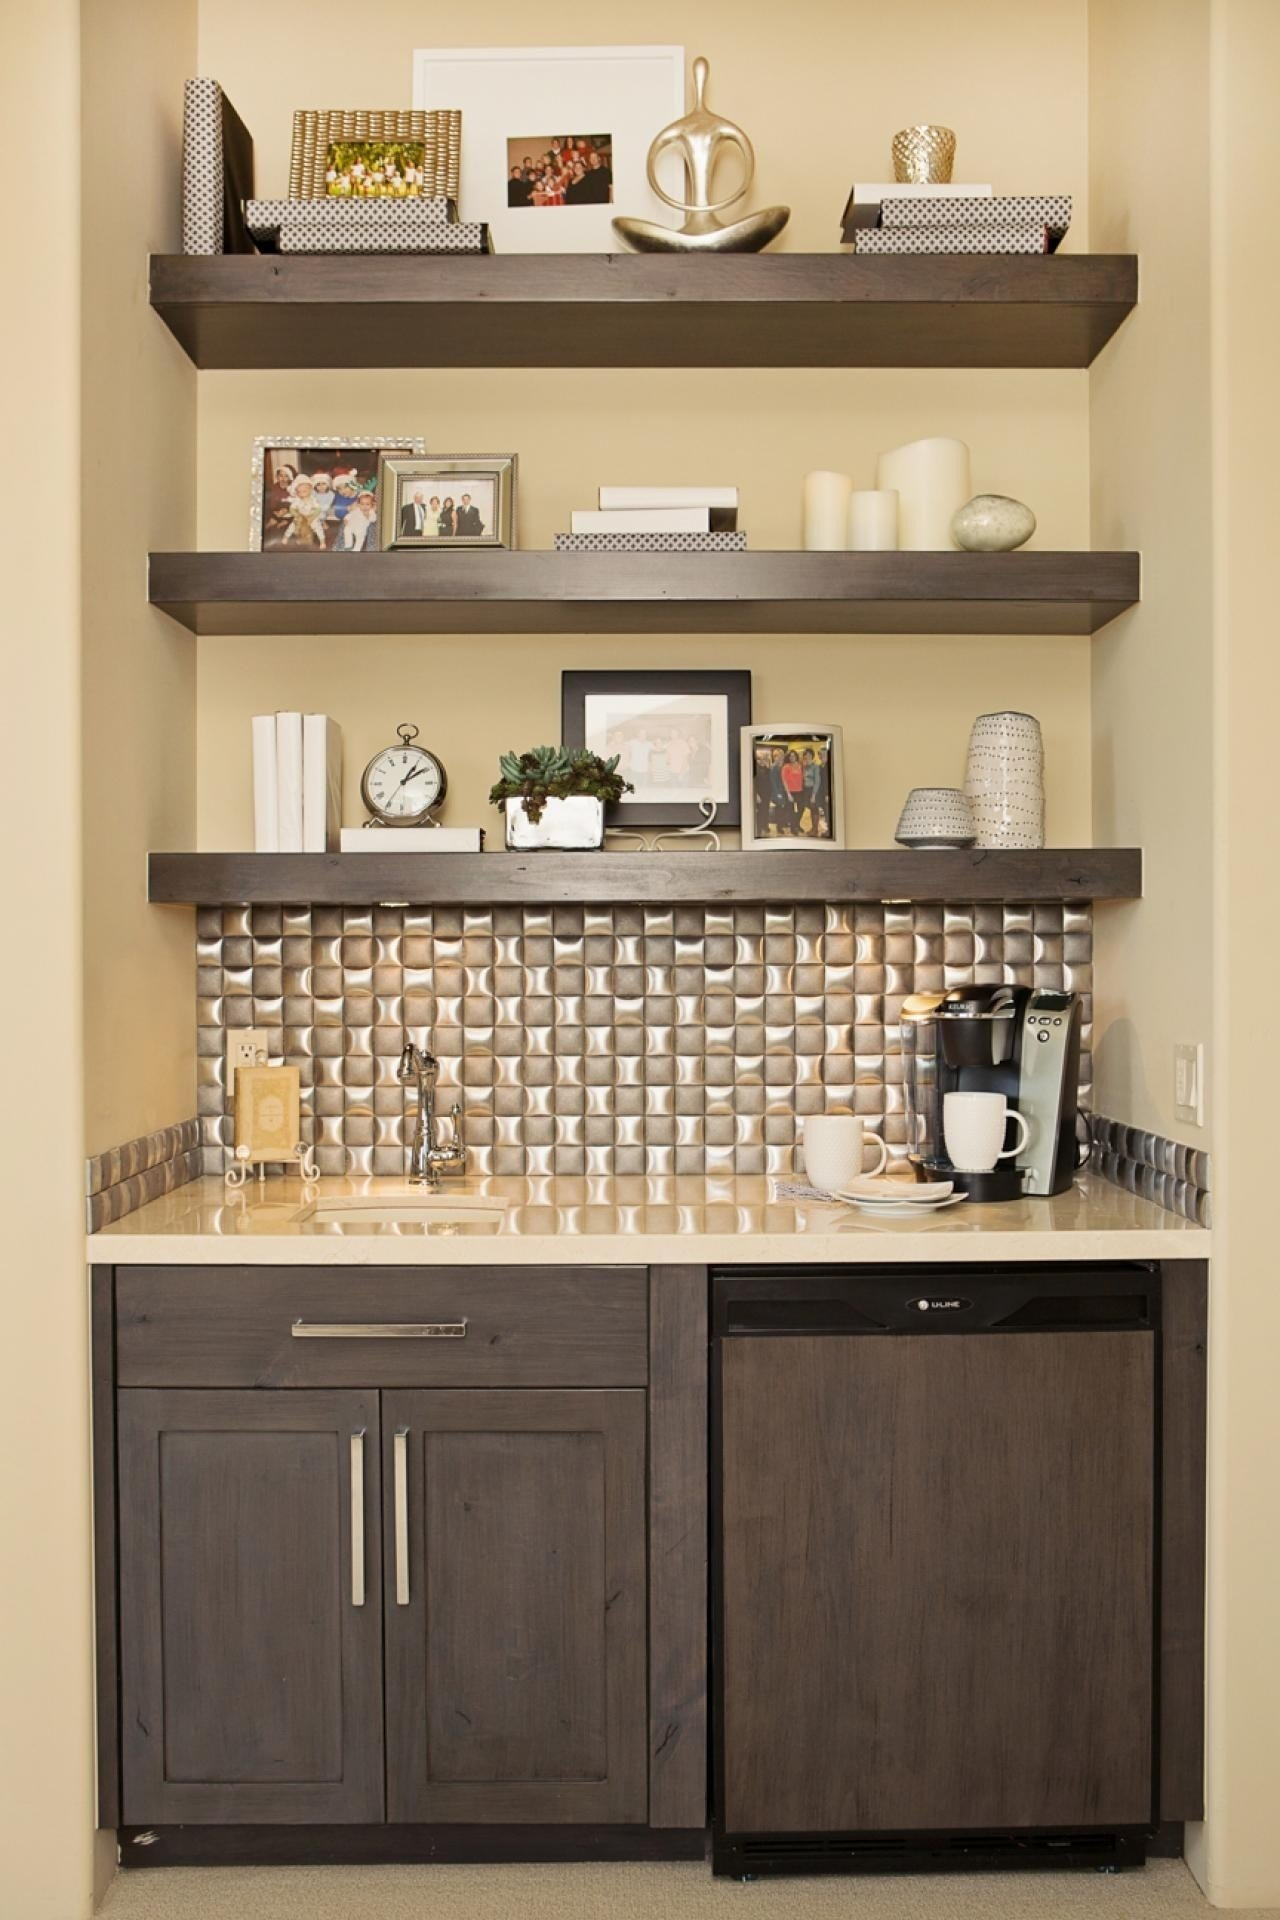 Small Wet Bars With Shelves - Interior Design 3d •